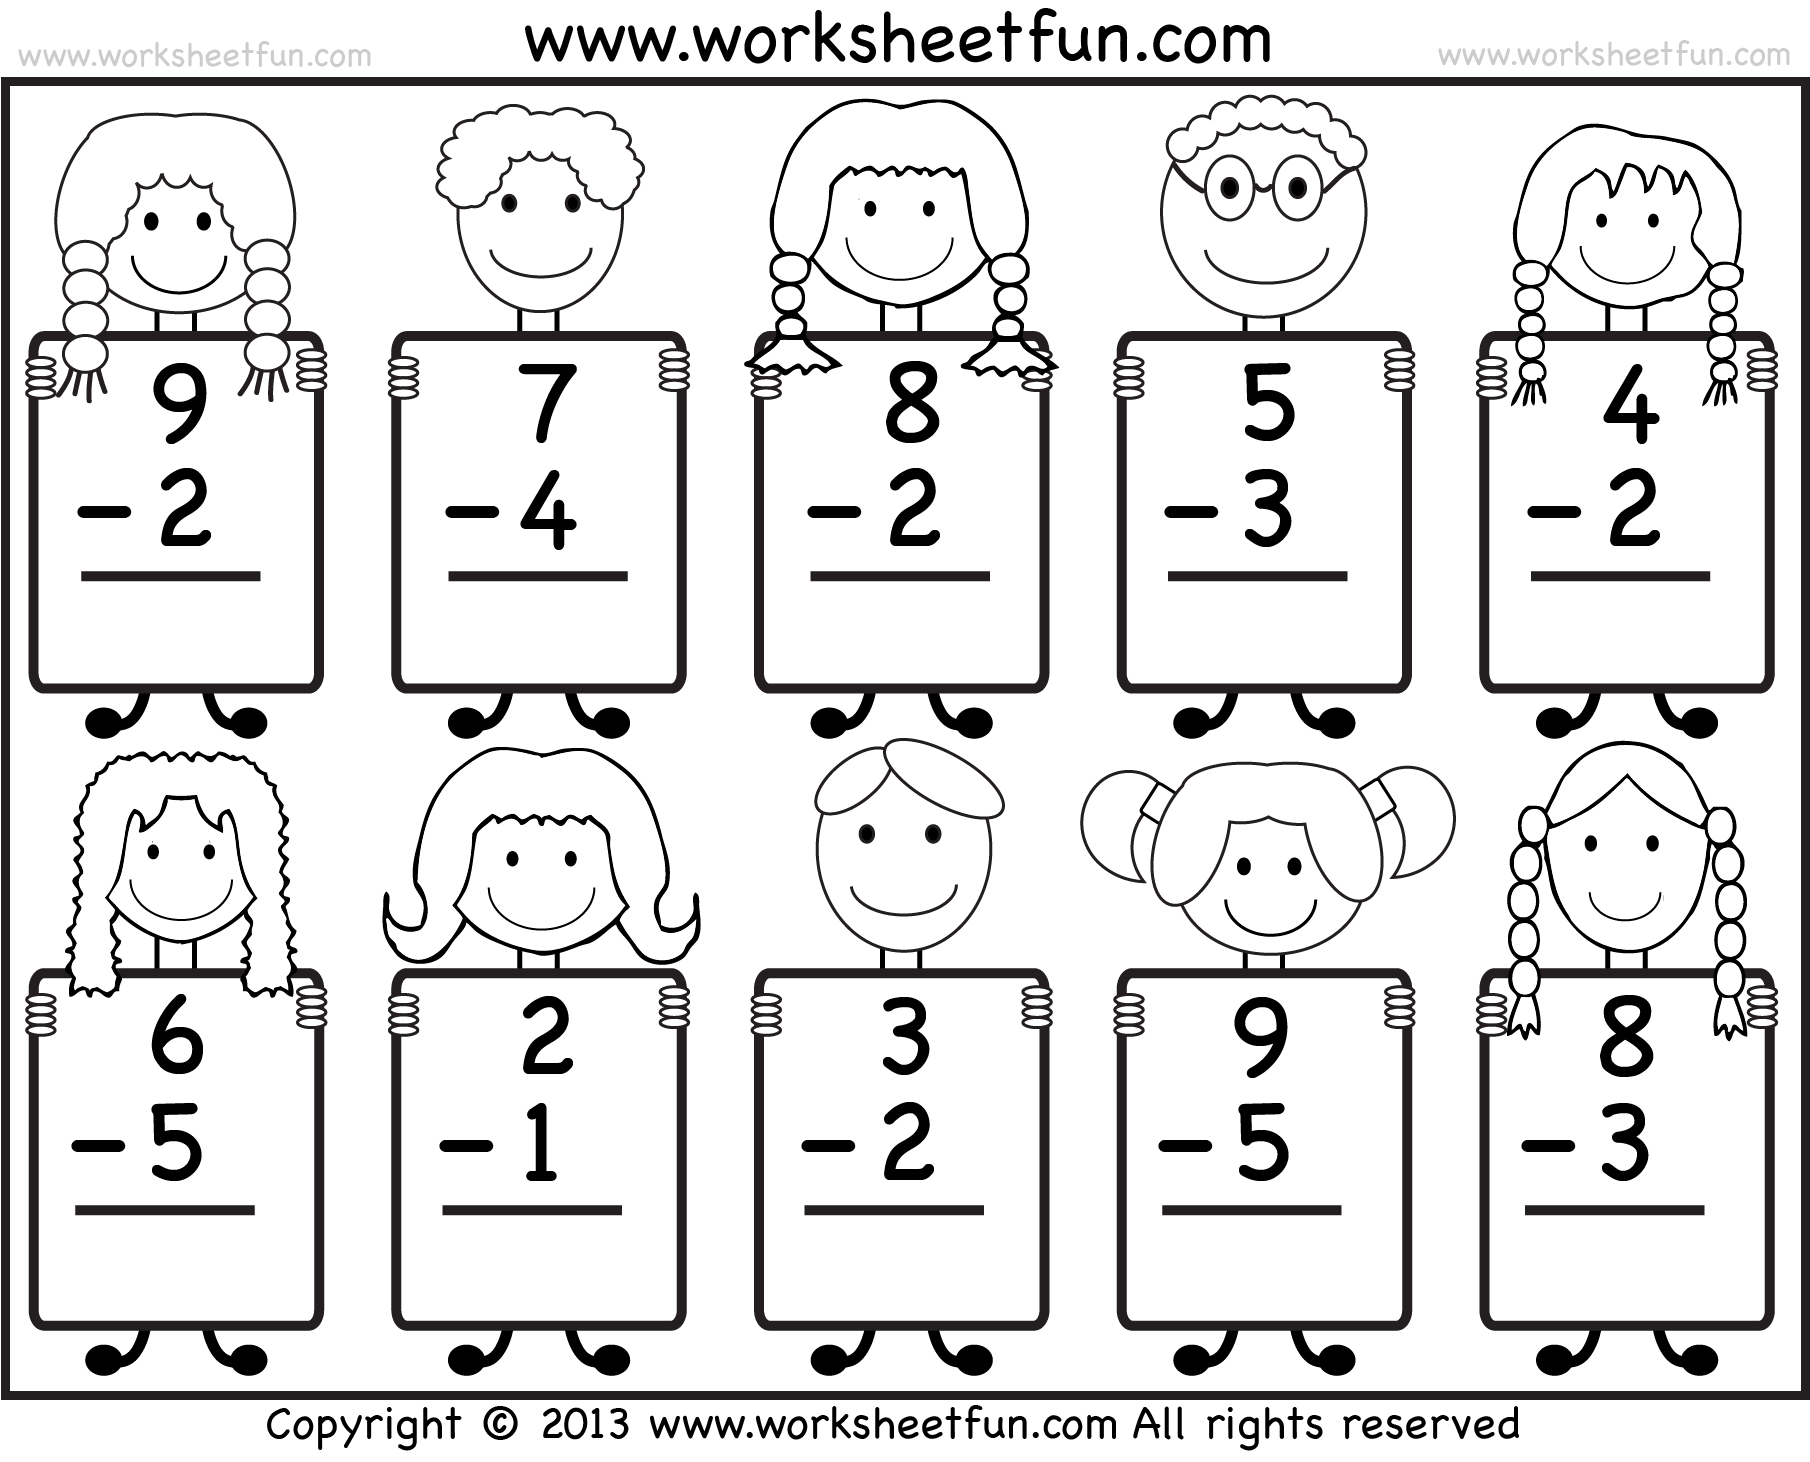 Free Worksheet Kg Math Worksheets counting to 5 sheet 3 bw reading worksheets printable kindergarten subtraction beginner subtraction